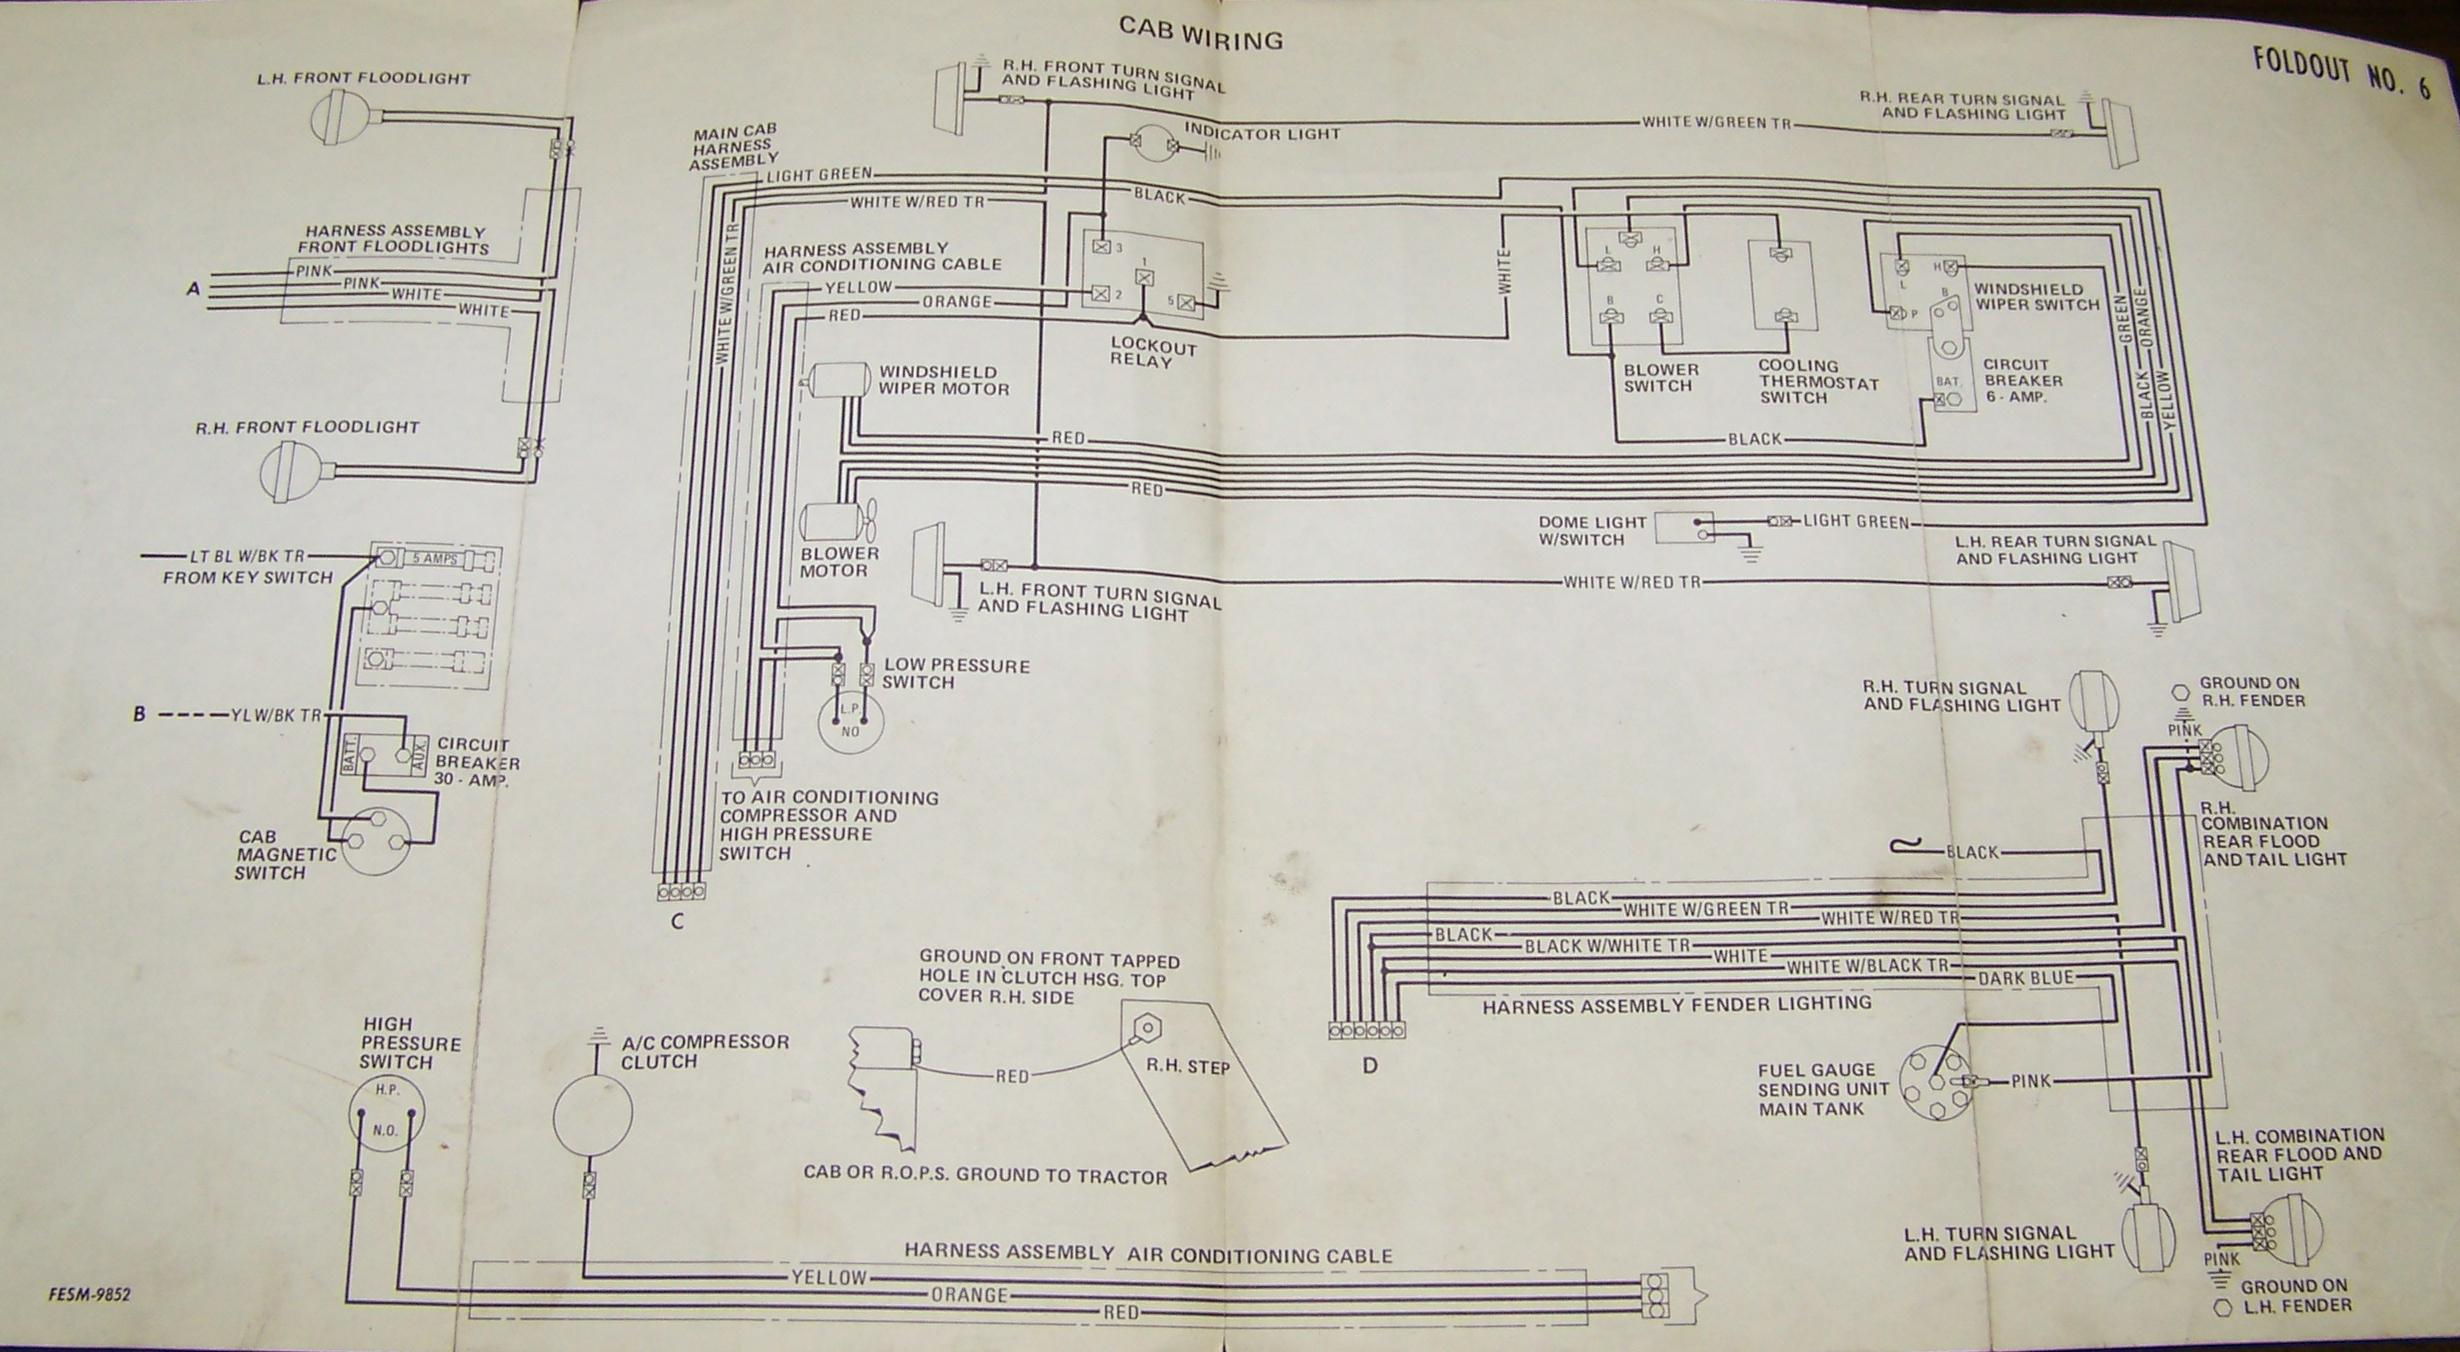 504 International Tractor Parts Diagram - Wiring Diagrams Schema